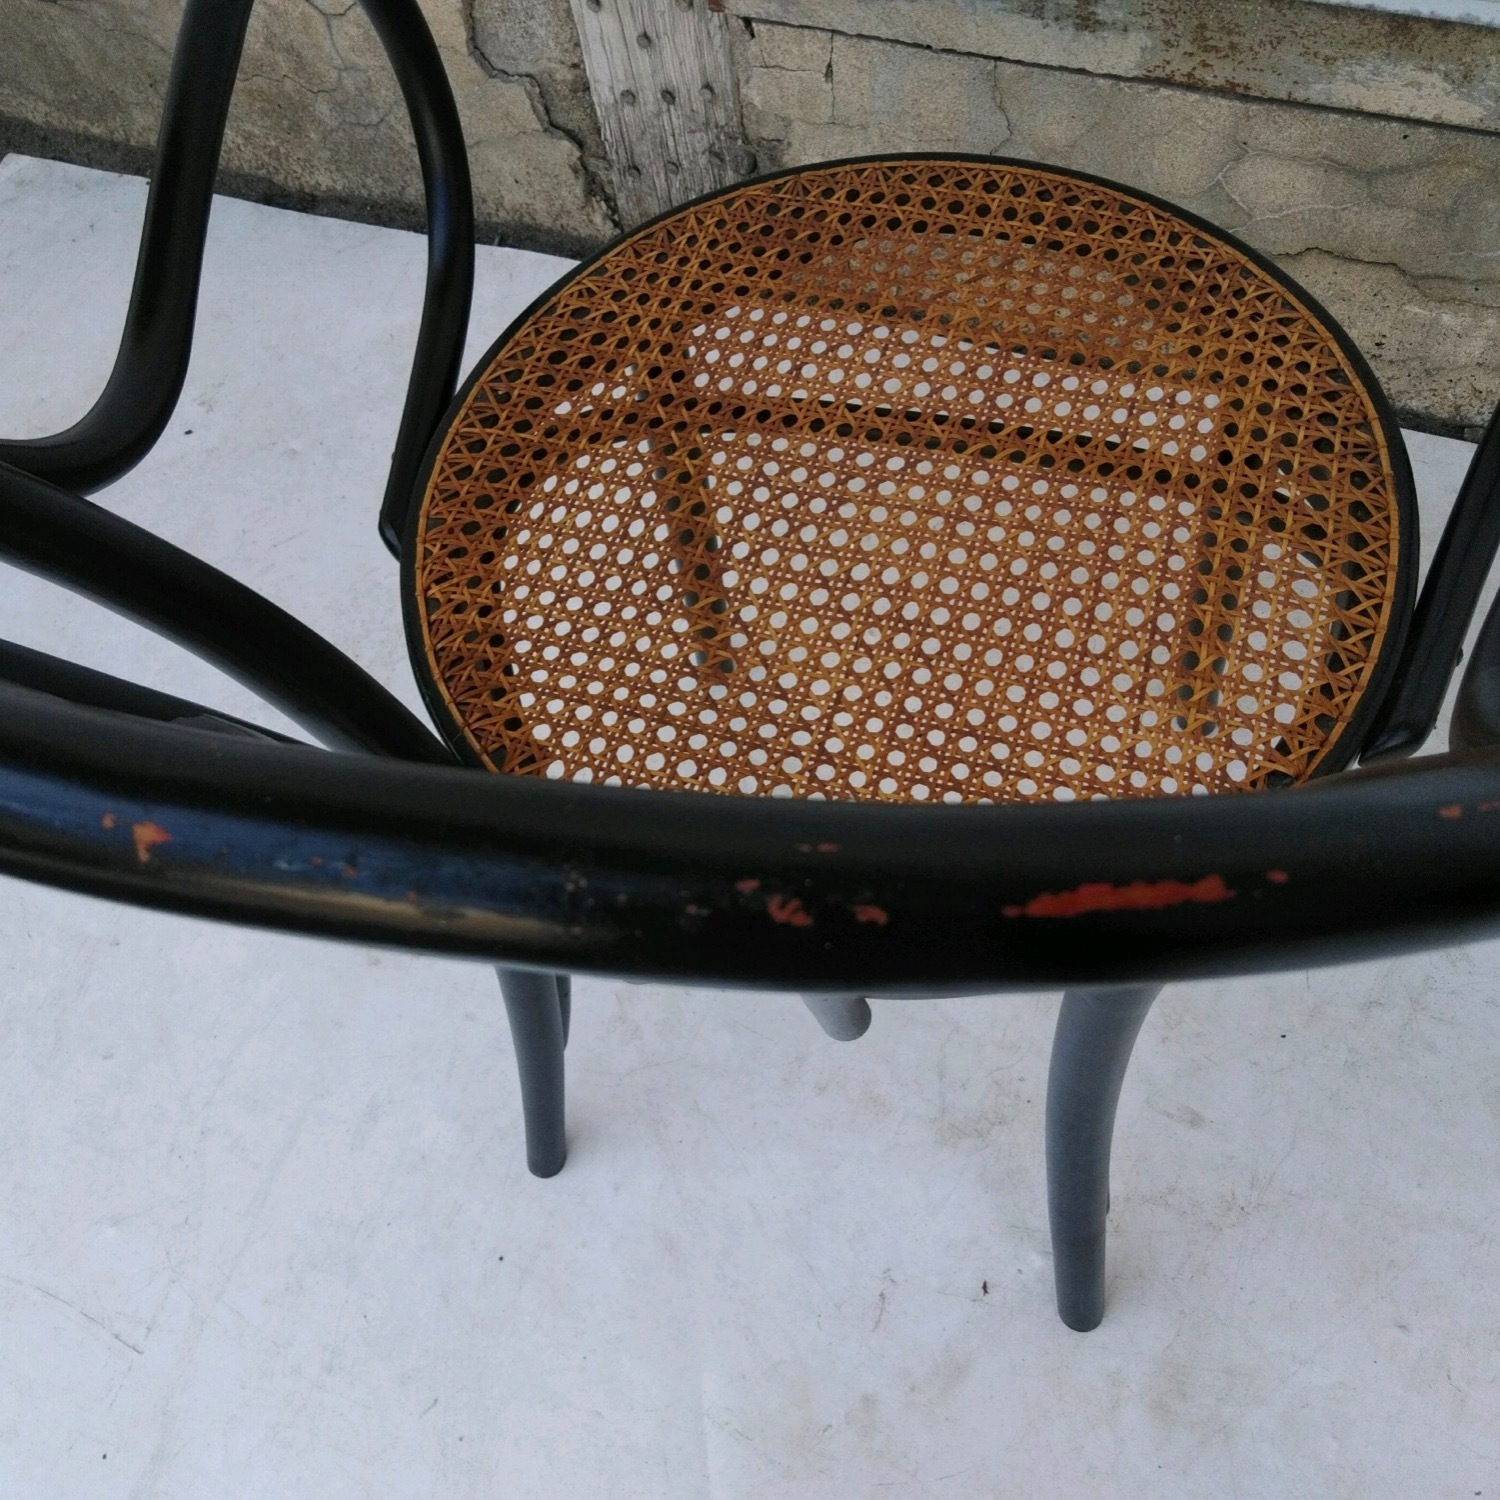 Vintage Cane Seat Accent Chair - image-6